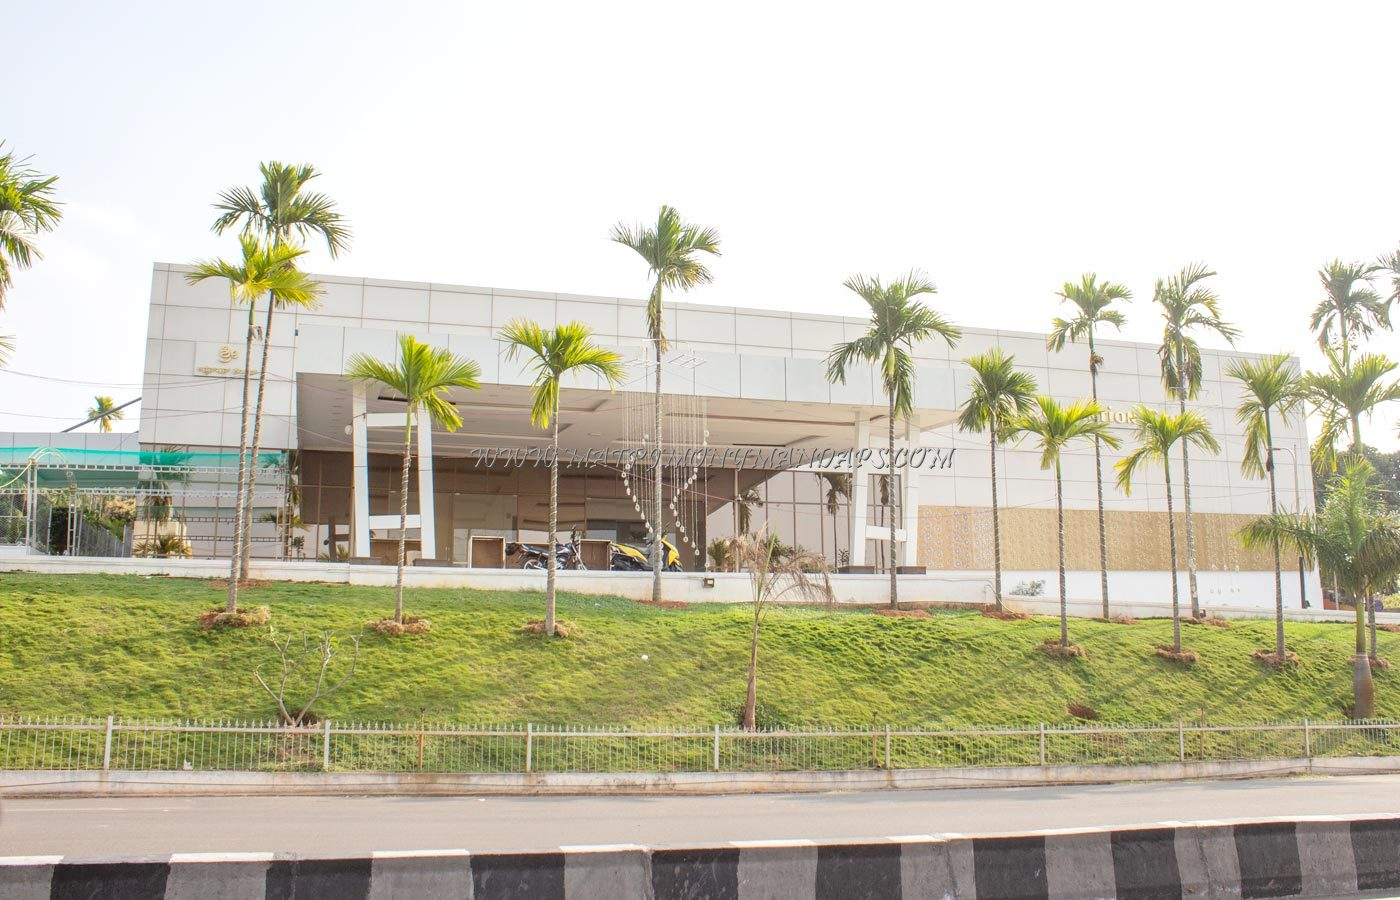 Find More Convention Halls in Banashankari